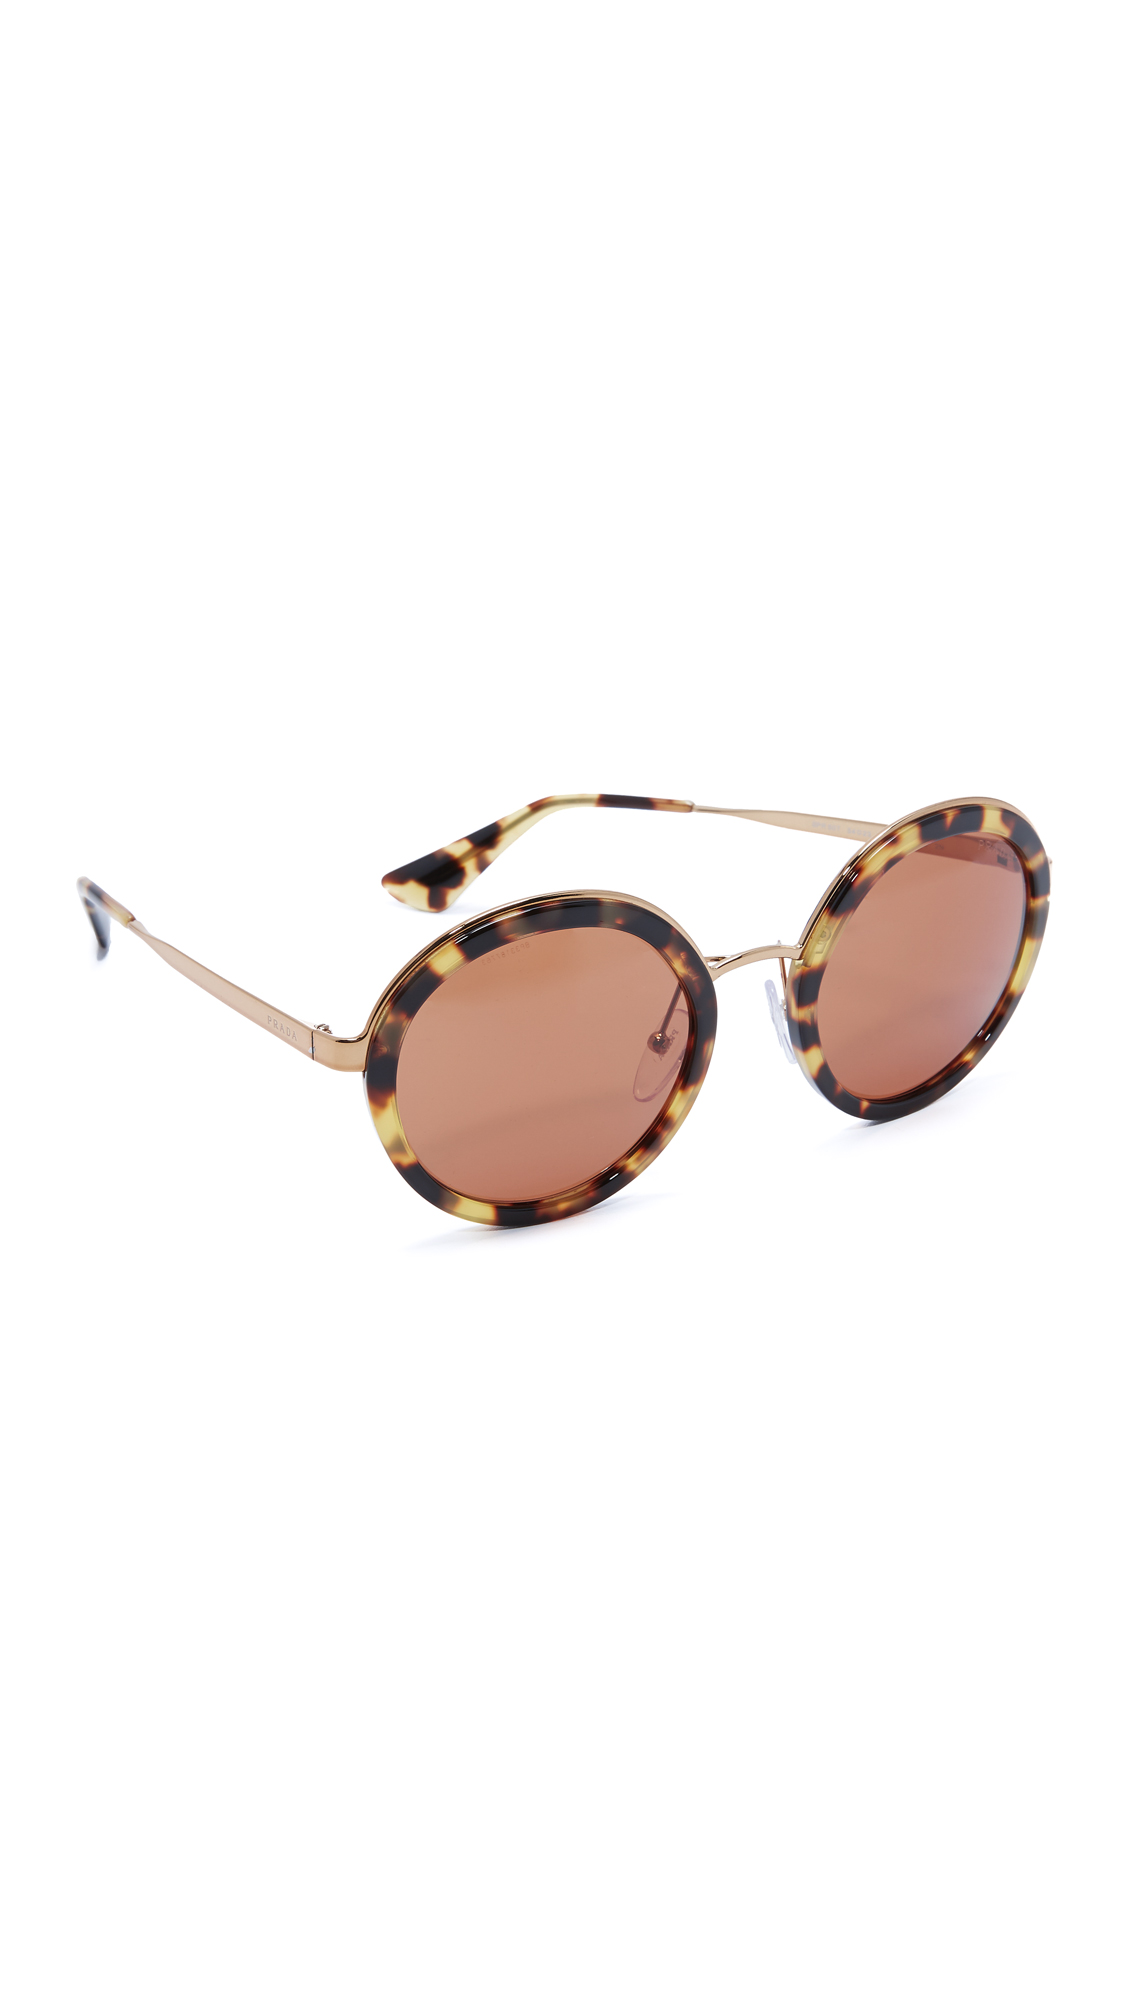 Prada Round Sunglasses - Medium Havana/Brown at Shopbop